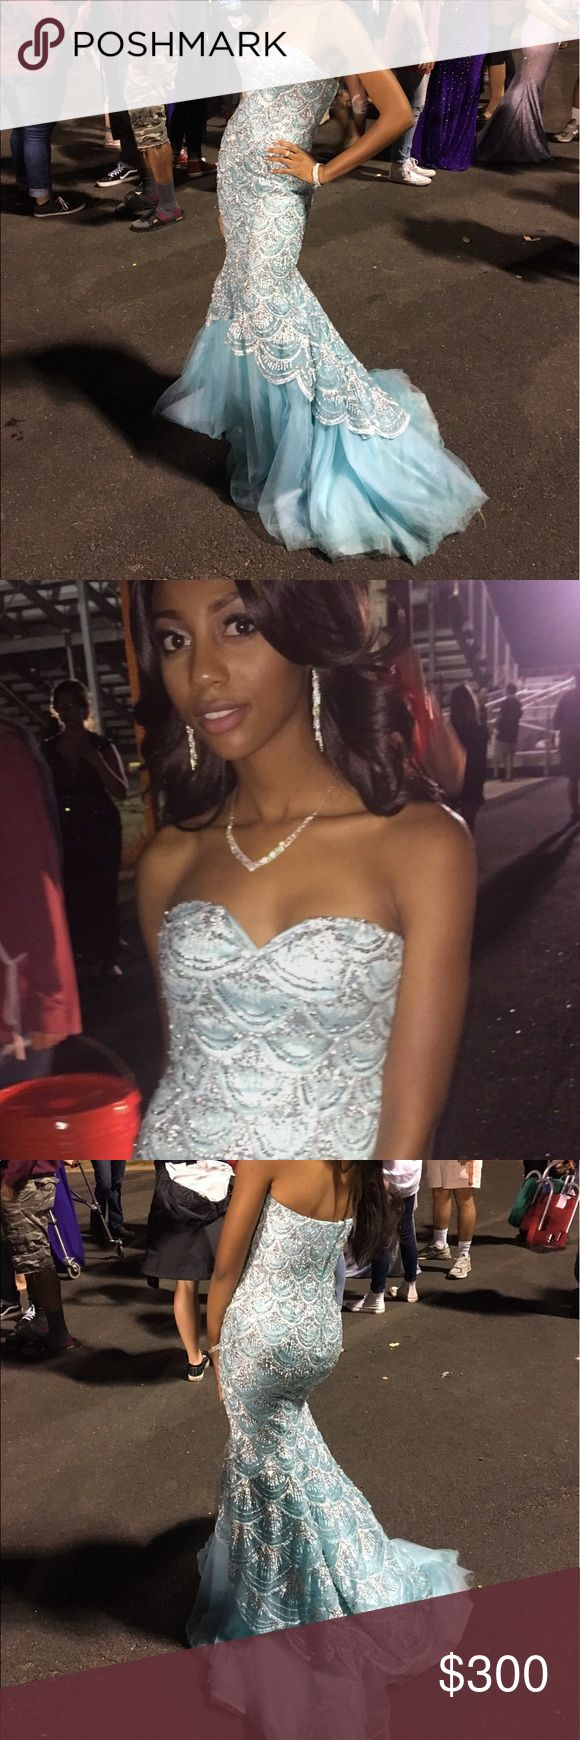 Blue Mermaid Prom Dress Blue Dress With Silver Mermaid Sequin By Sherri Hill Sherri Hill Dresses Strapless